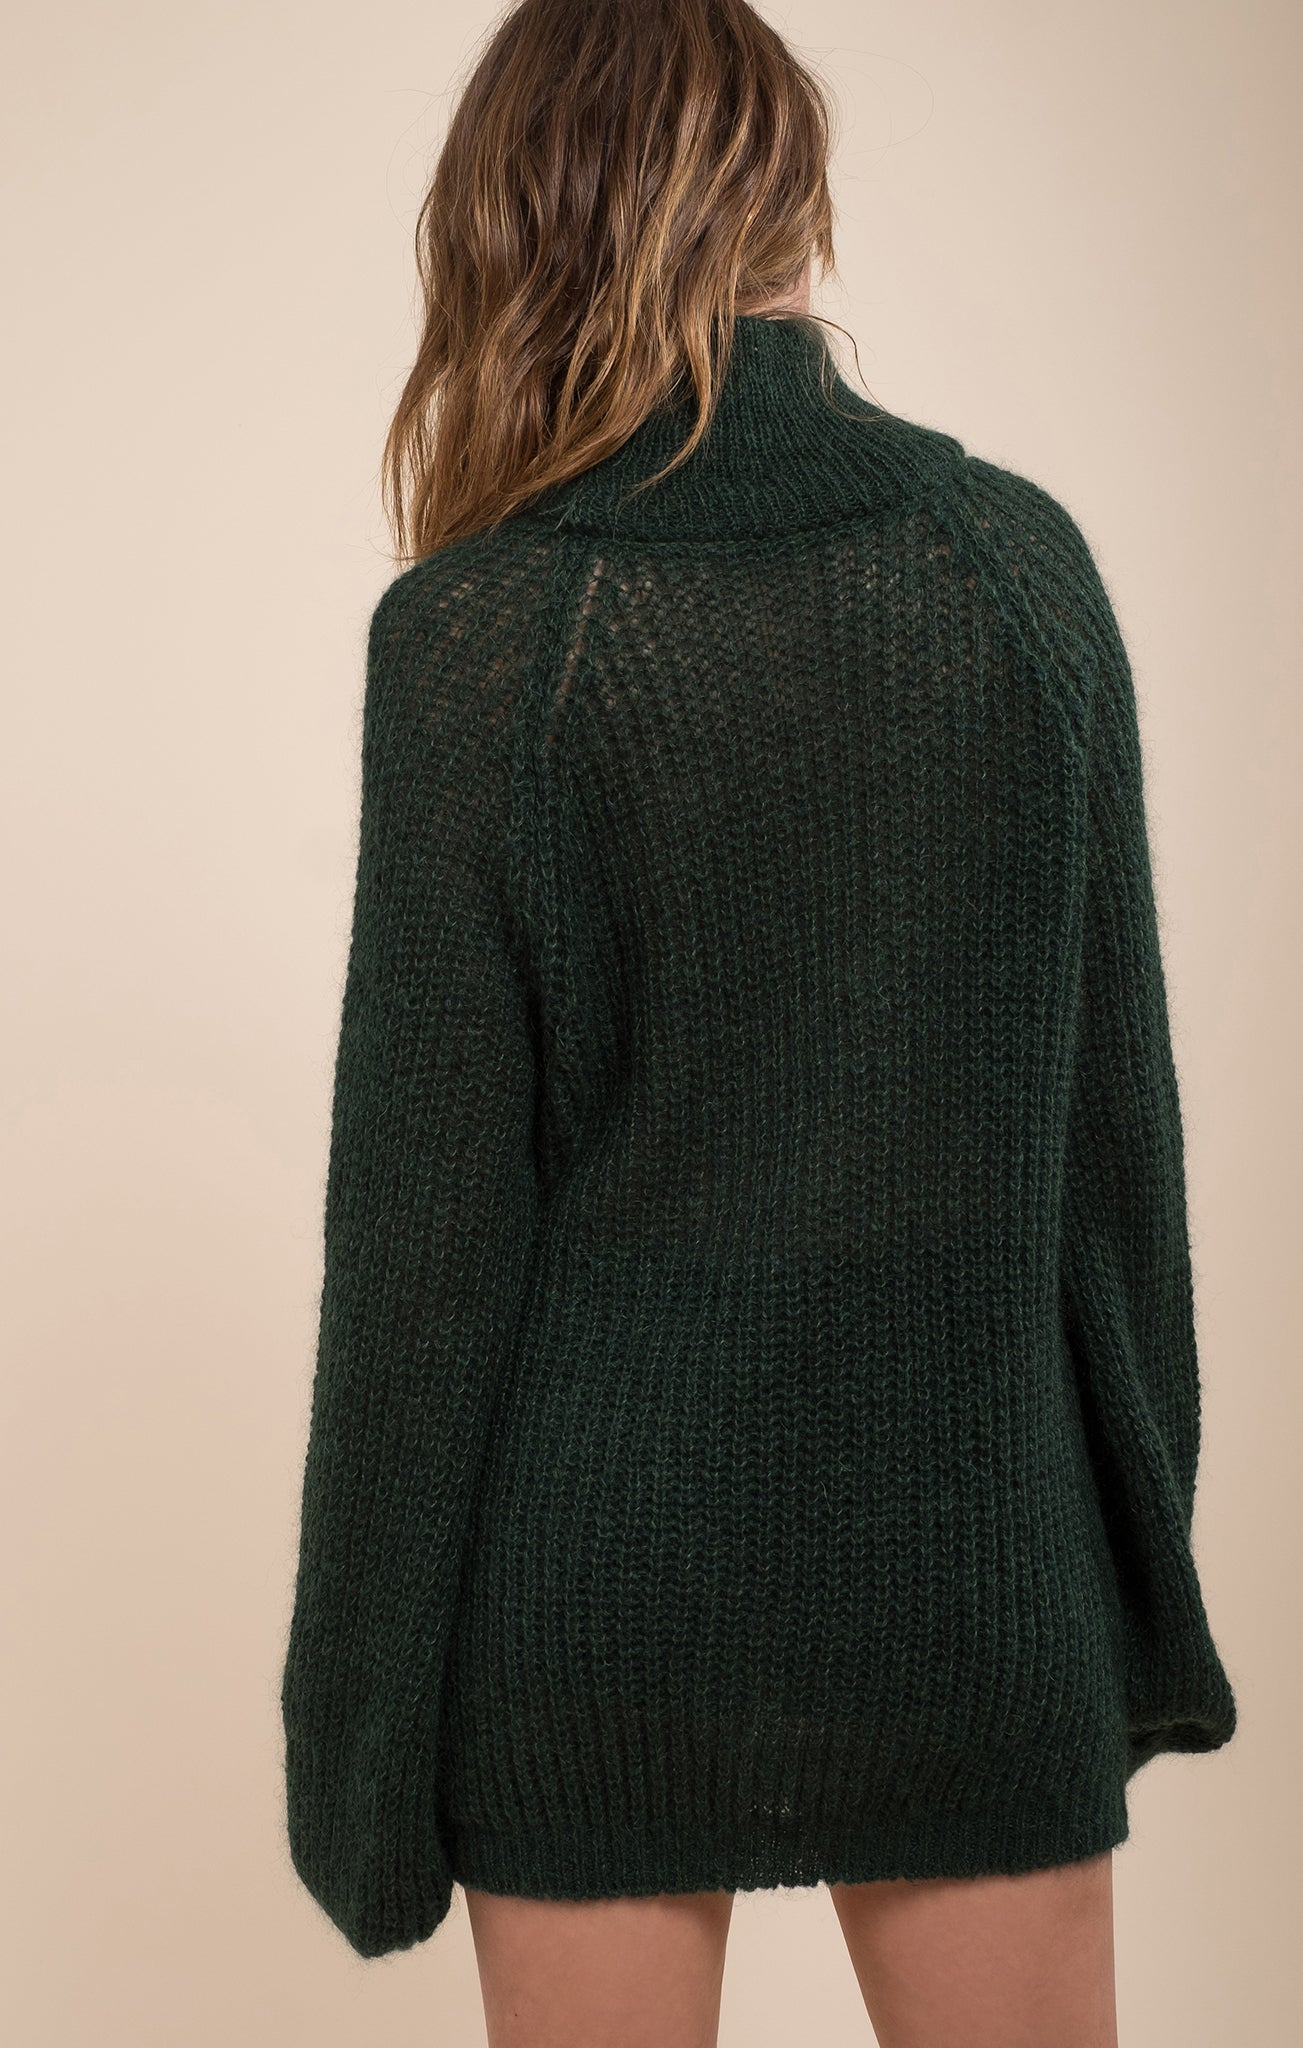 COCOON SLEEVE SWEATER